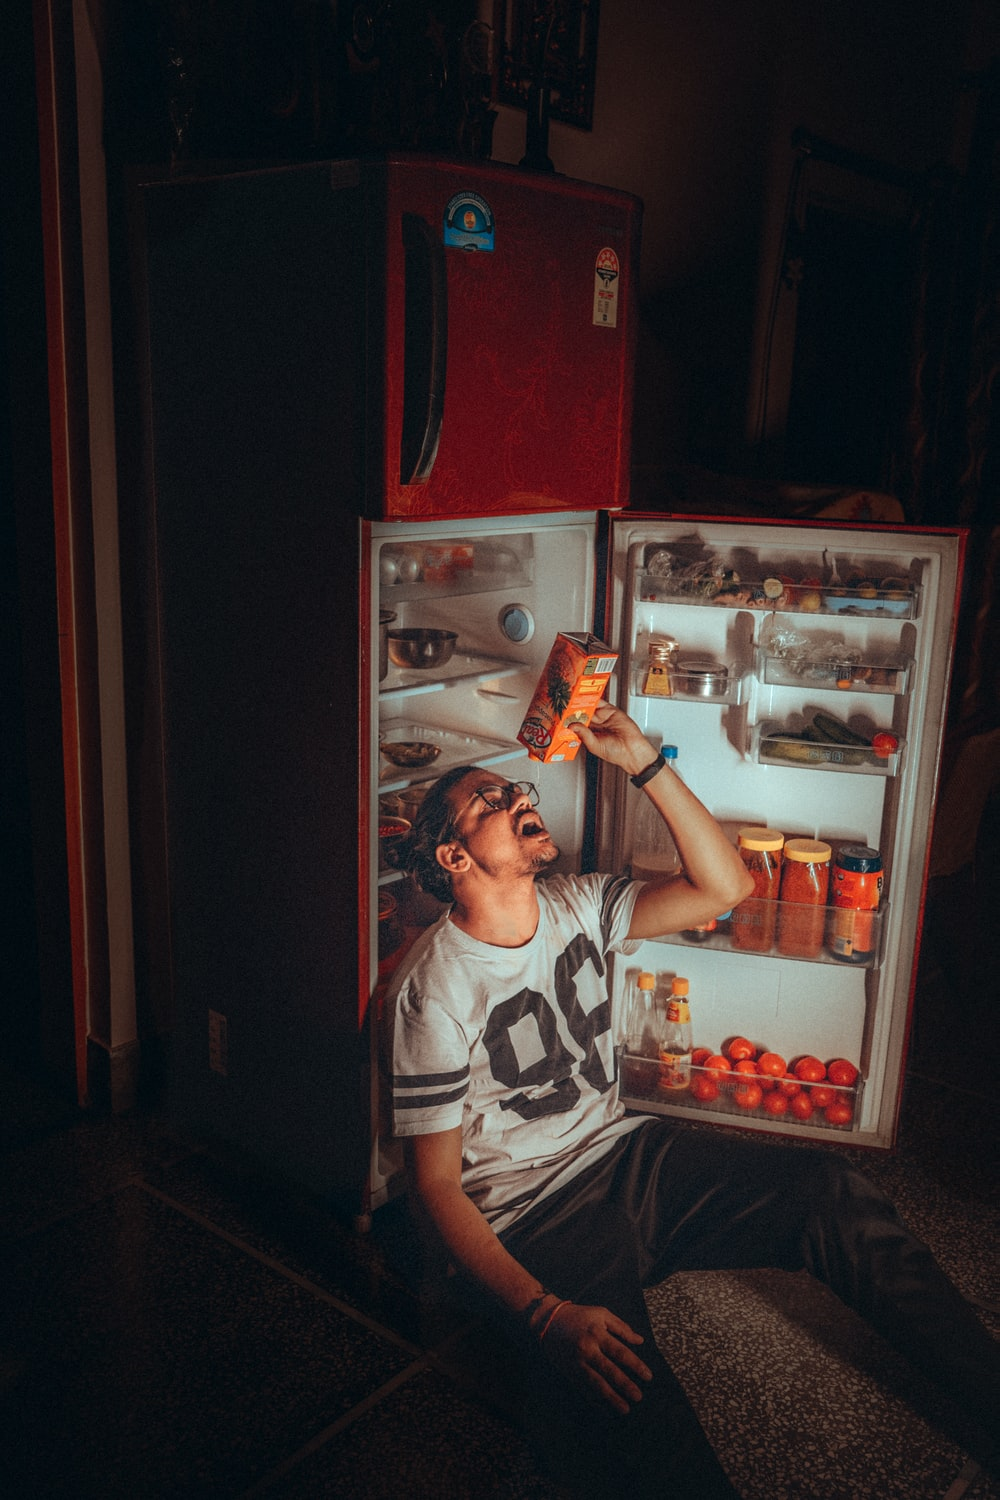 boy in white and black tank top standing beside red top mount refrigerator